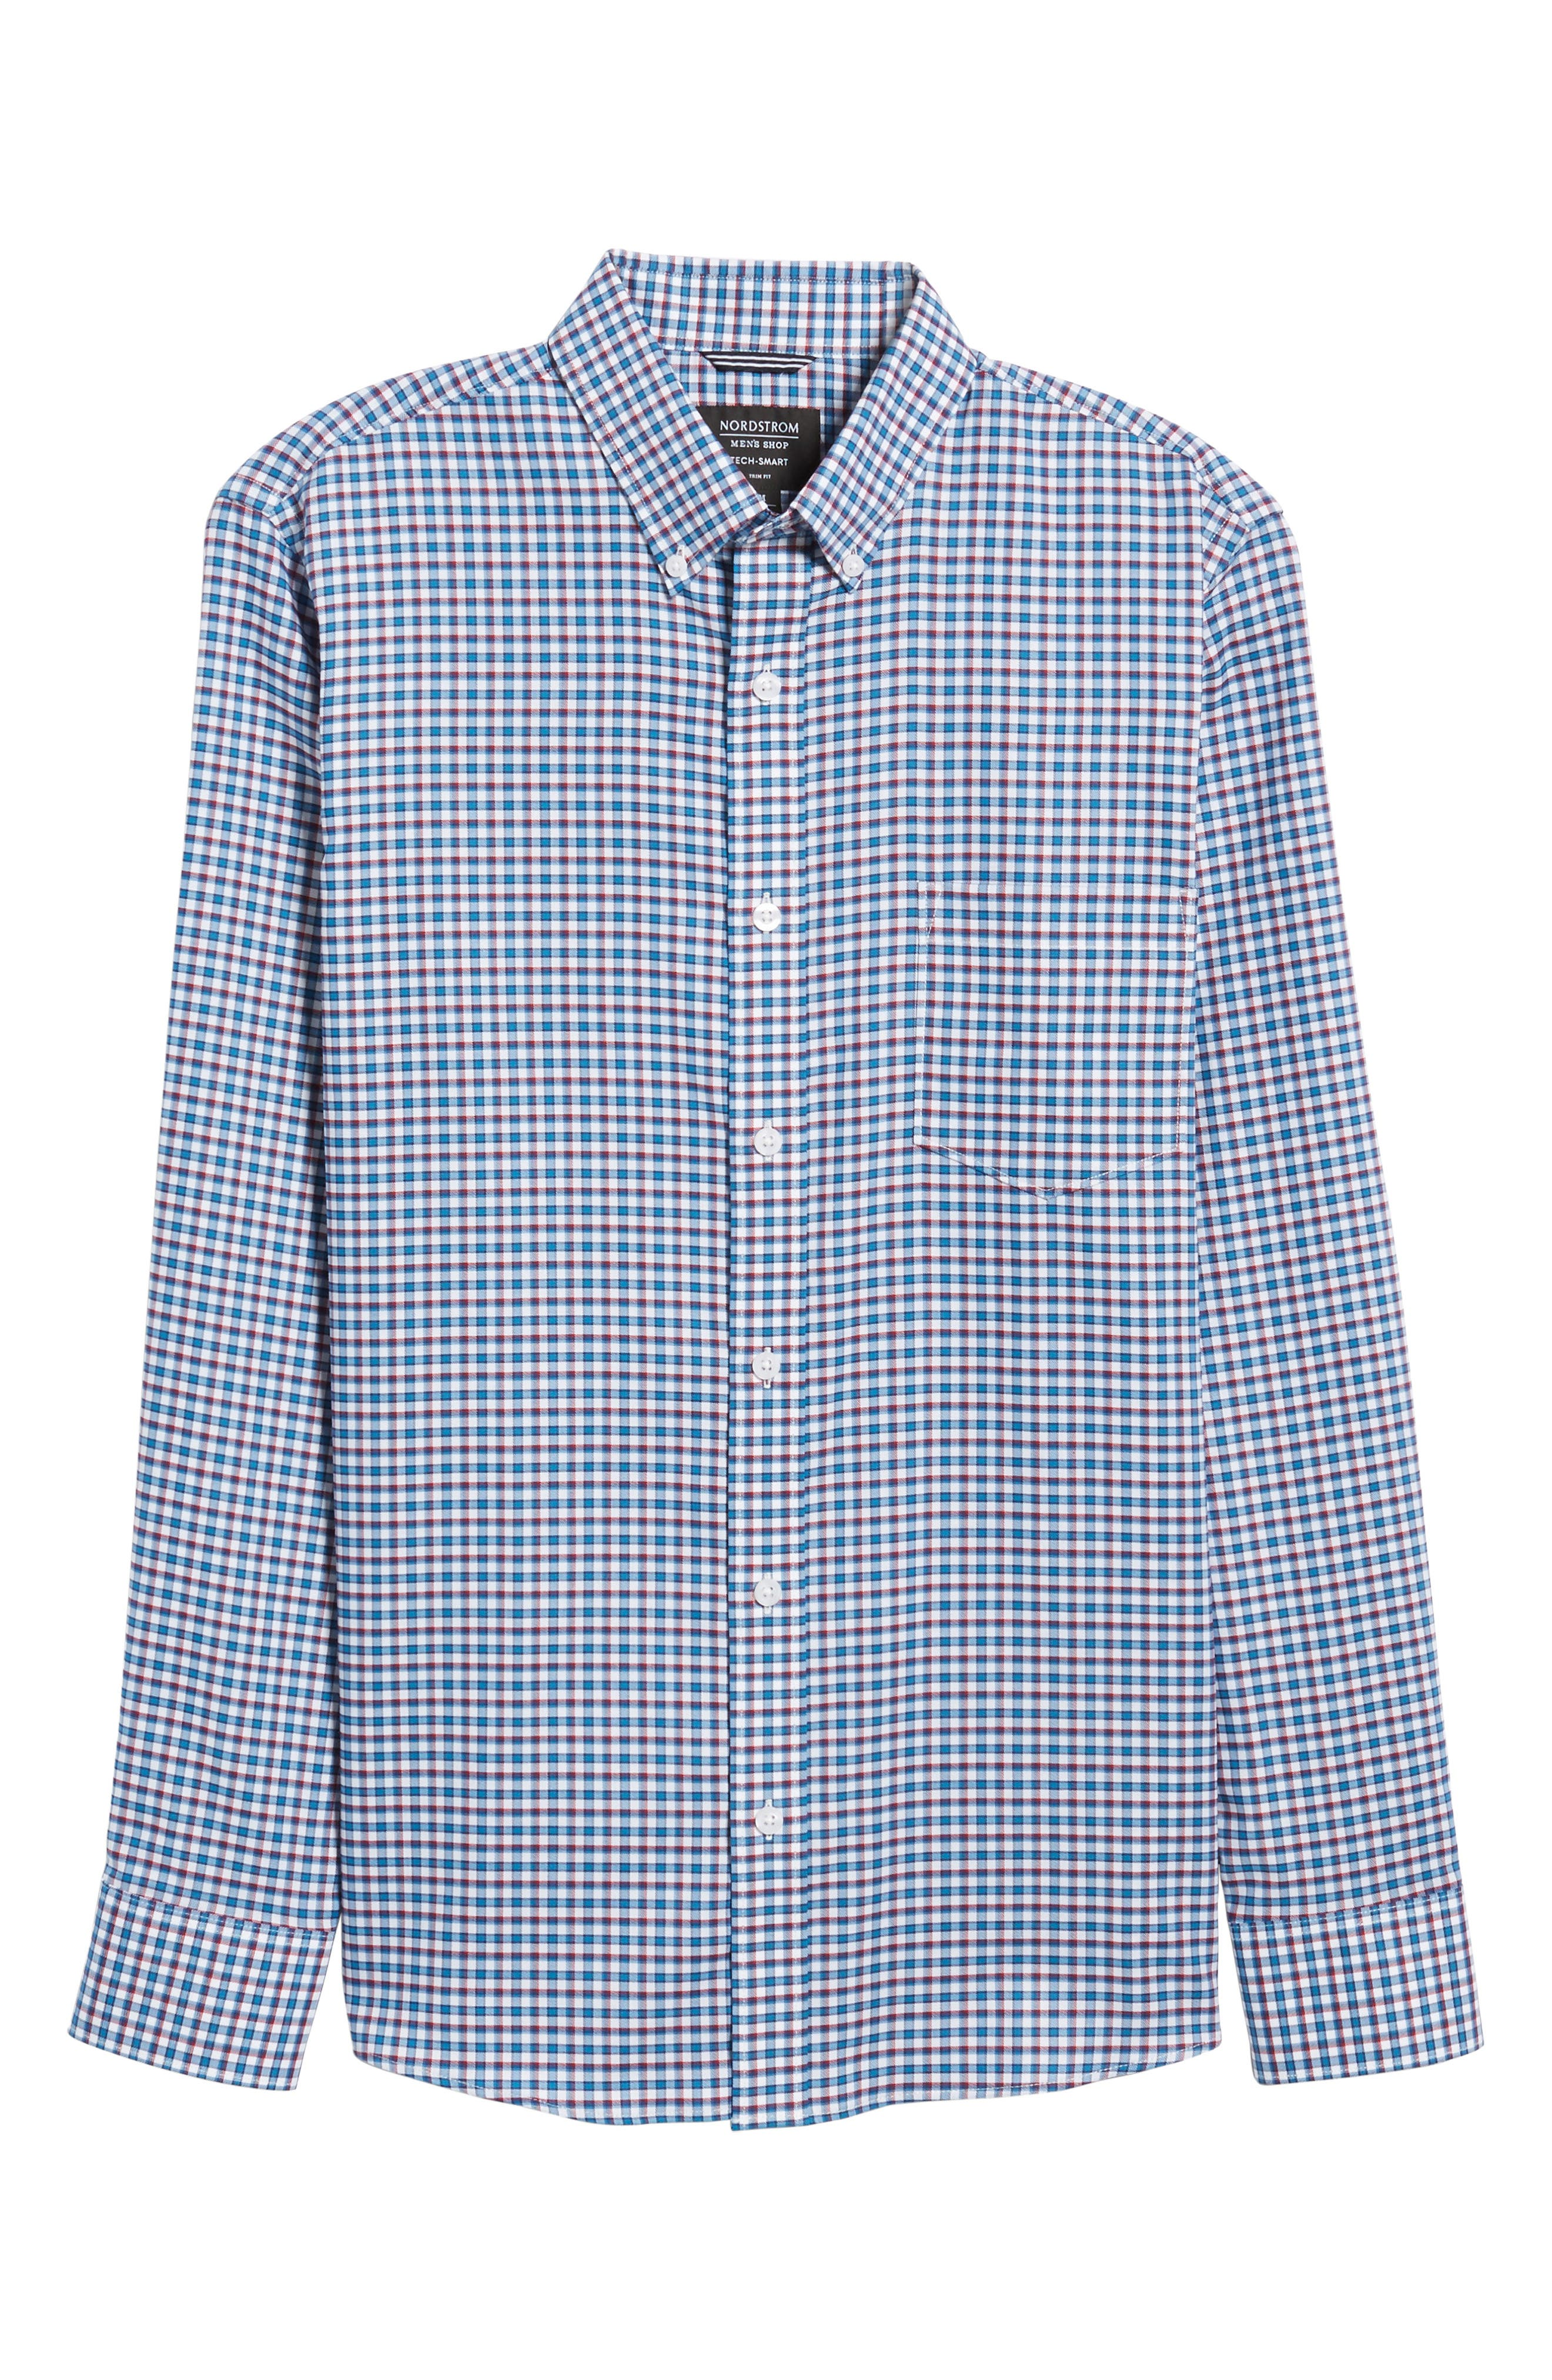 Slim Fit Tech-Smart Mini Check Sport Shirt,                             Alternate thumbnail 6, color,                             Blue Estate White Mini Check